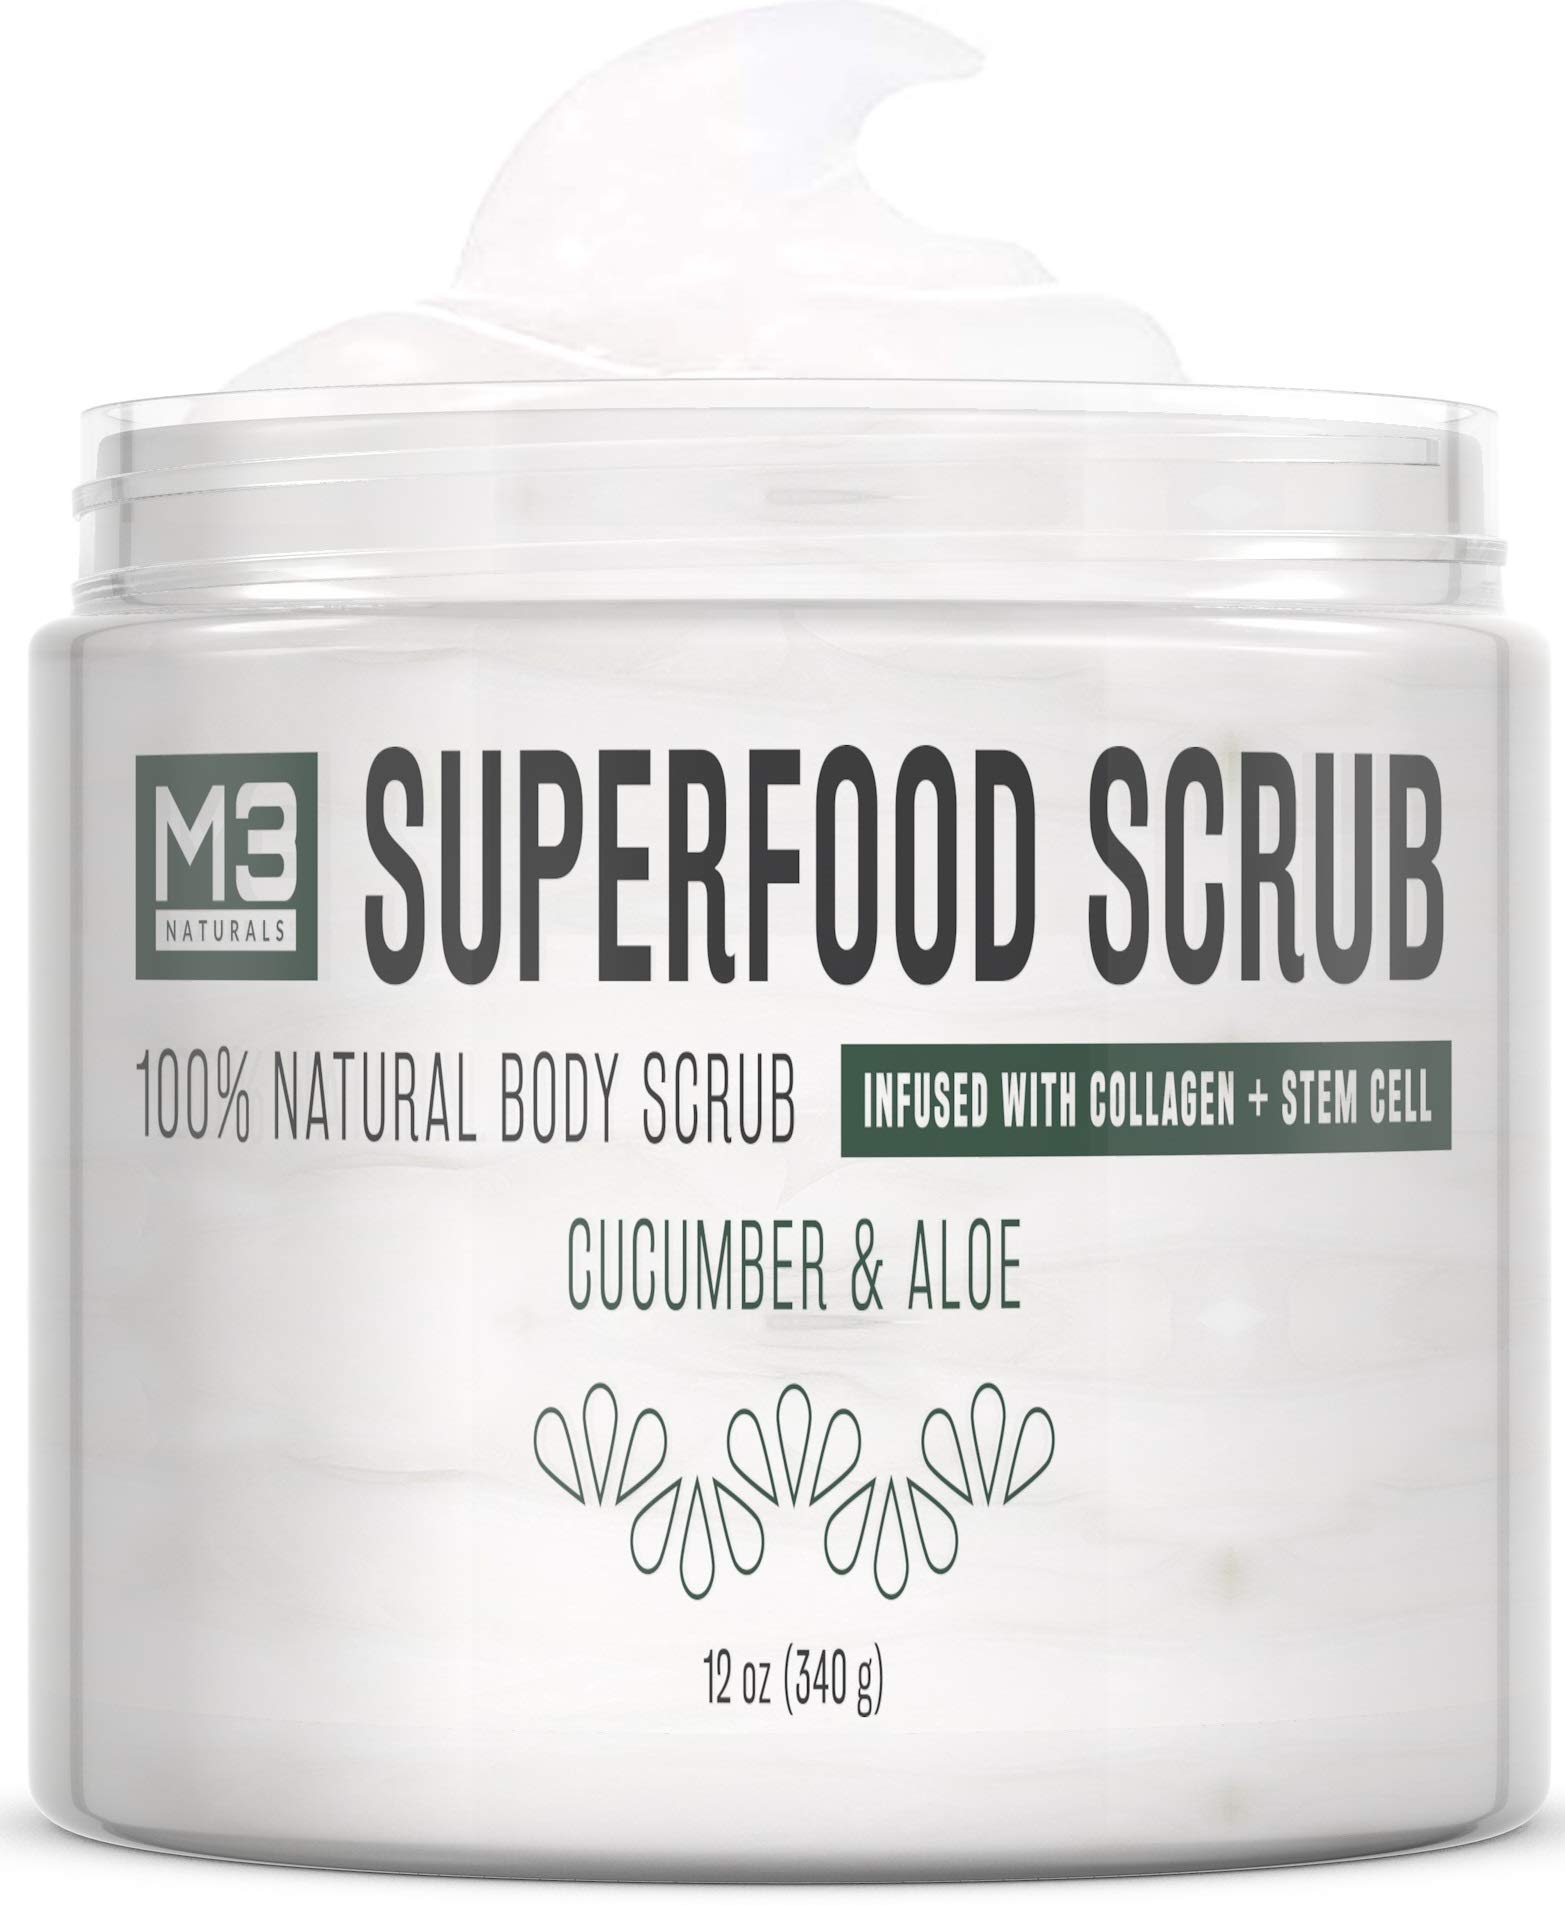 M3 Naturals Superfood Scrub infused with Collagen and Stem Cell by M3 Naturals